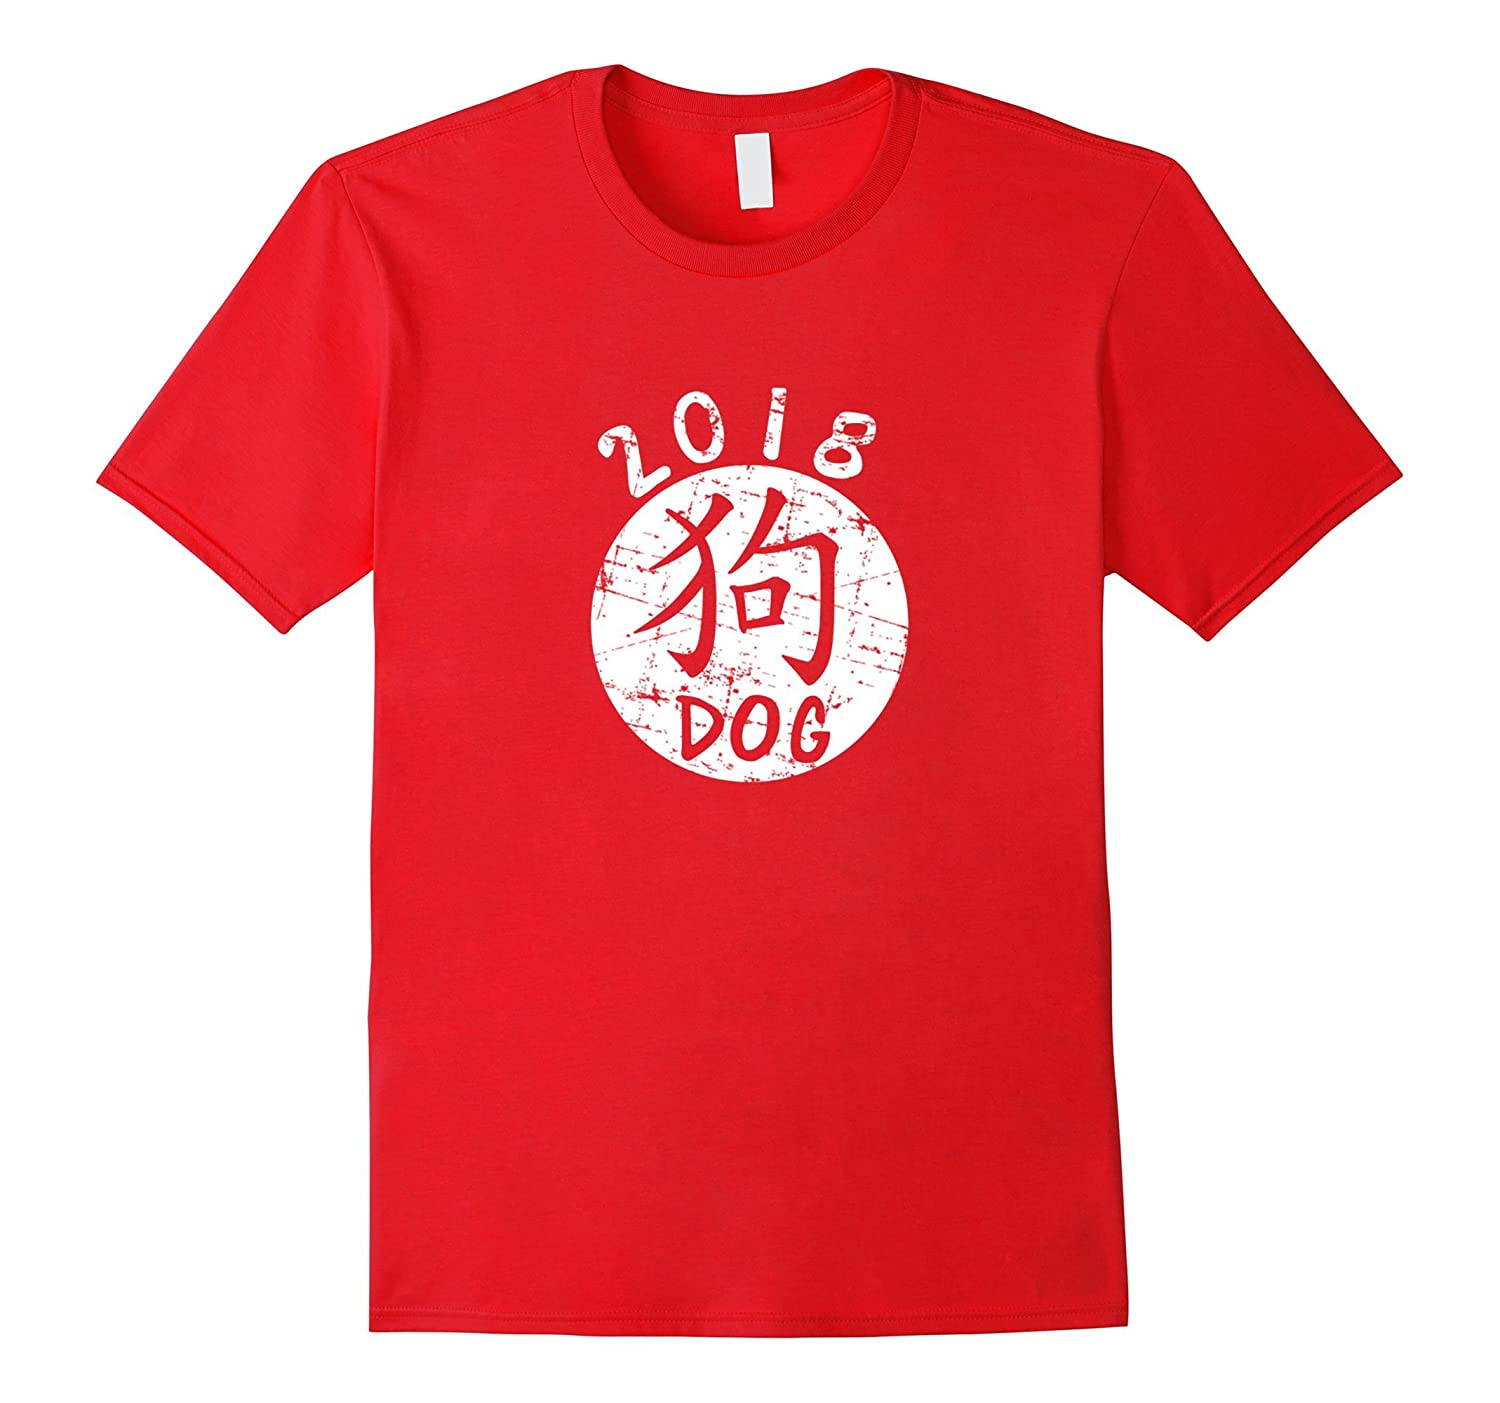 2018 Chinese year of the dog tshirt in Chinese character-ah my shirt one gift